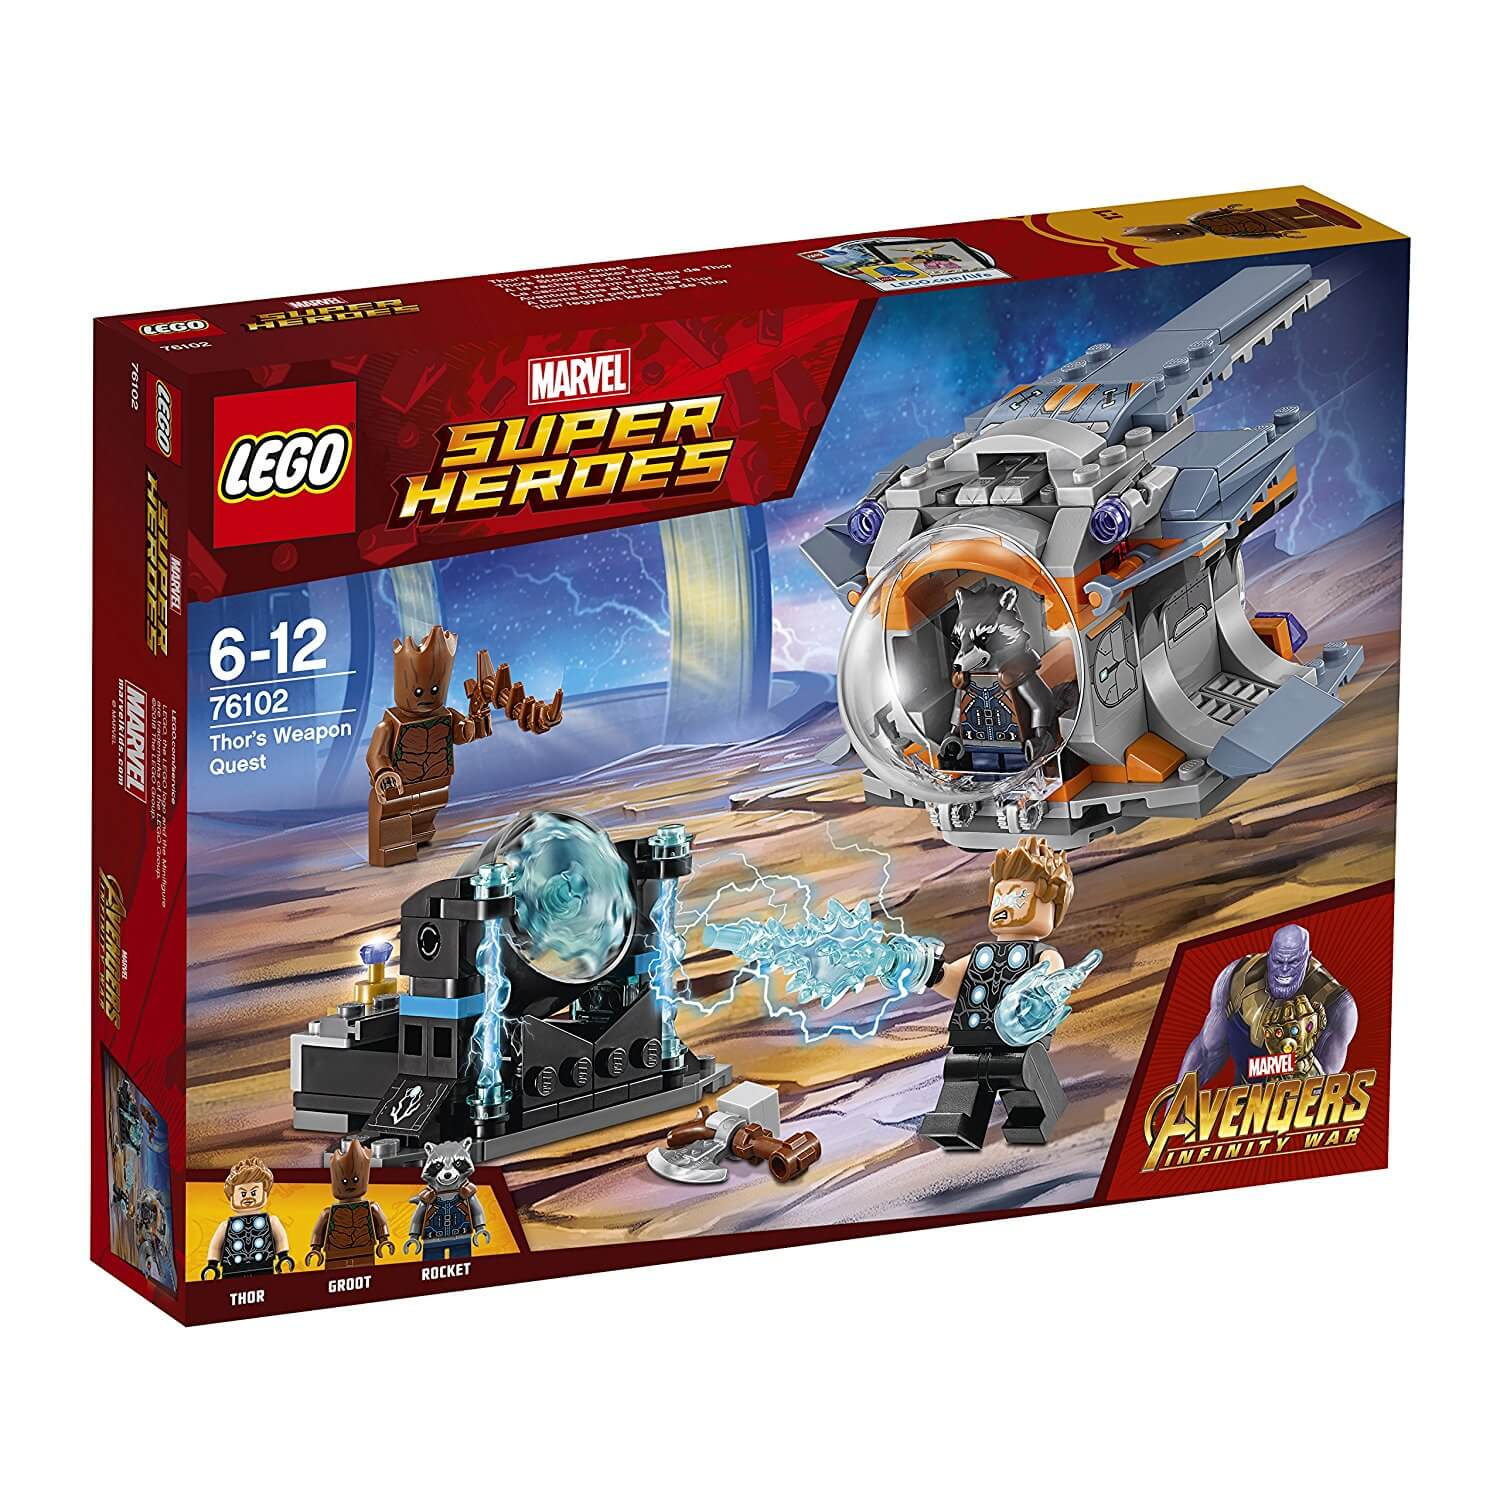 Mua đồ chơi LEGO 76102 - LEGO Marvel Super Heroes 76102 - Bộ Vũ Khí của Thor (LEGO Marvel Super Heroes 76102 Thor's Weapon Quest)